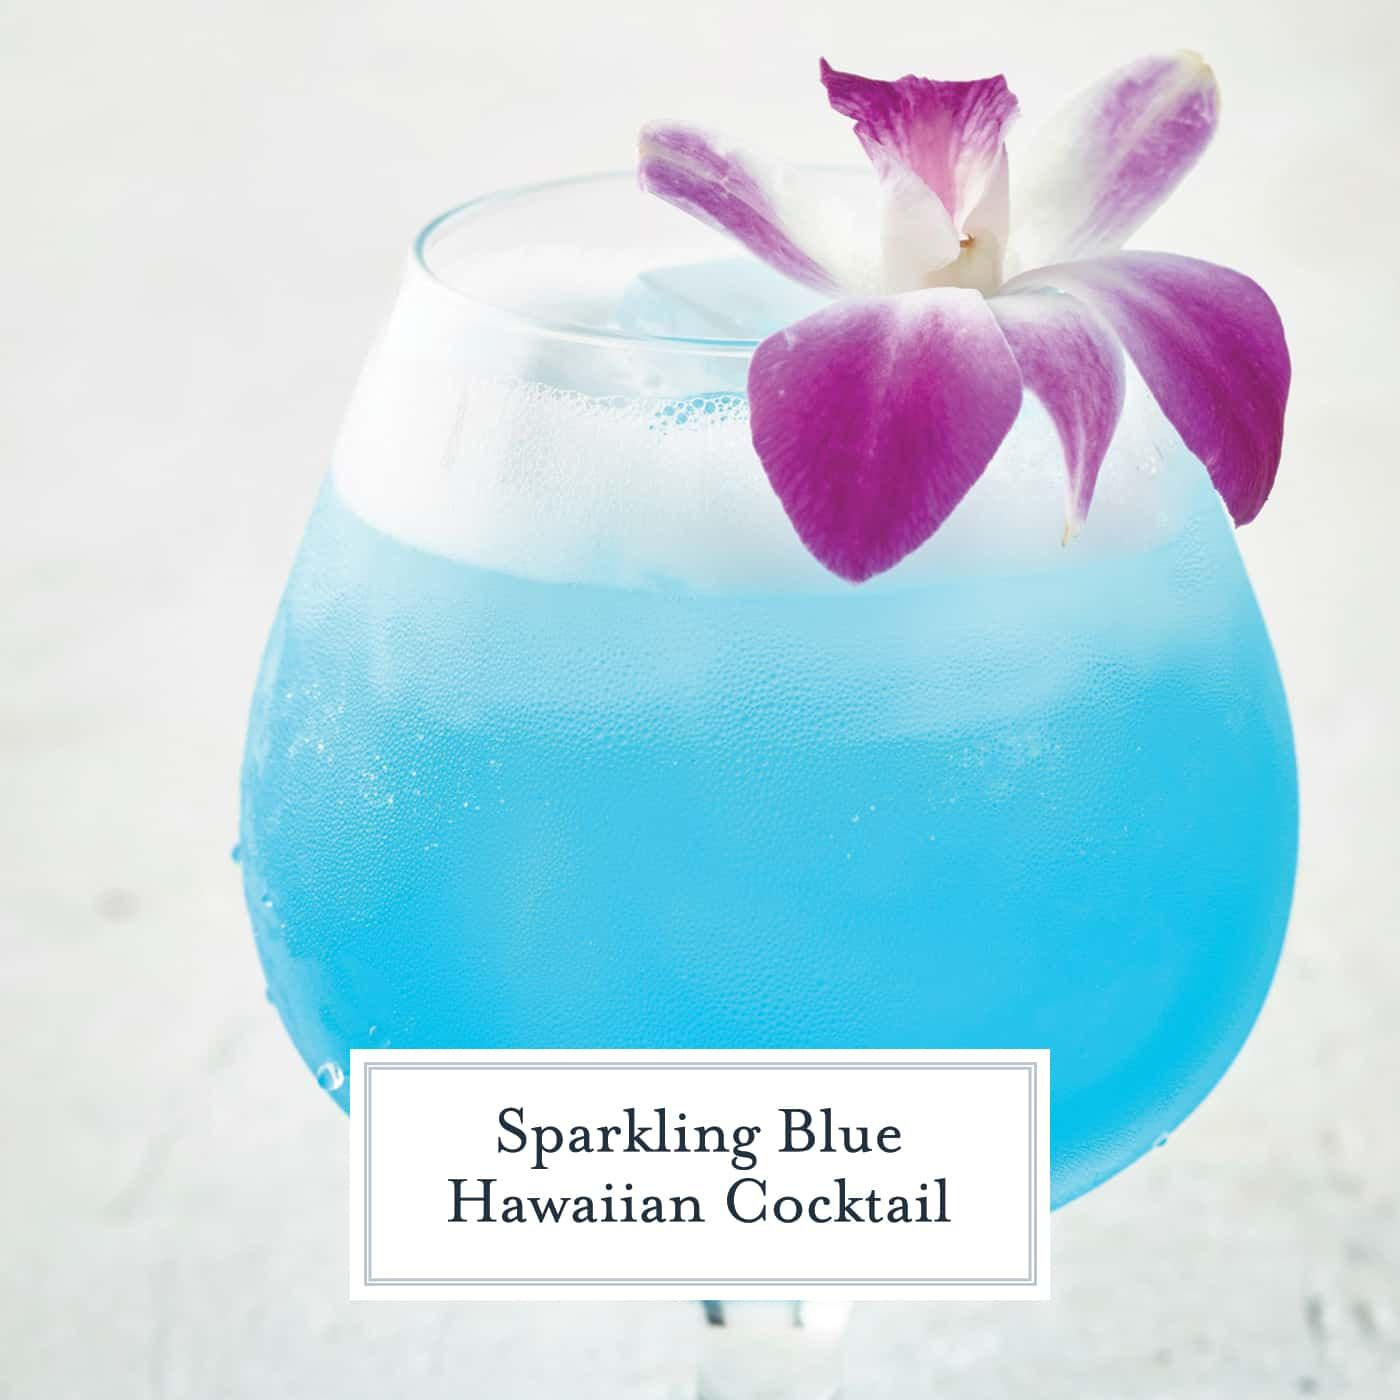 Sparkling Blue Hawaiian Cocktail Is A Refreshing Tropical